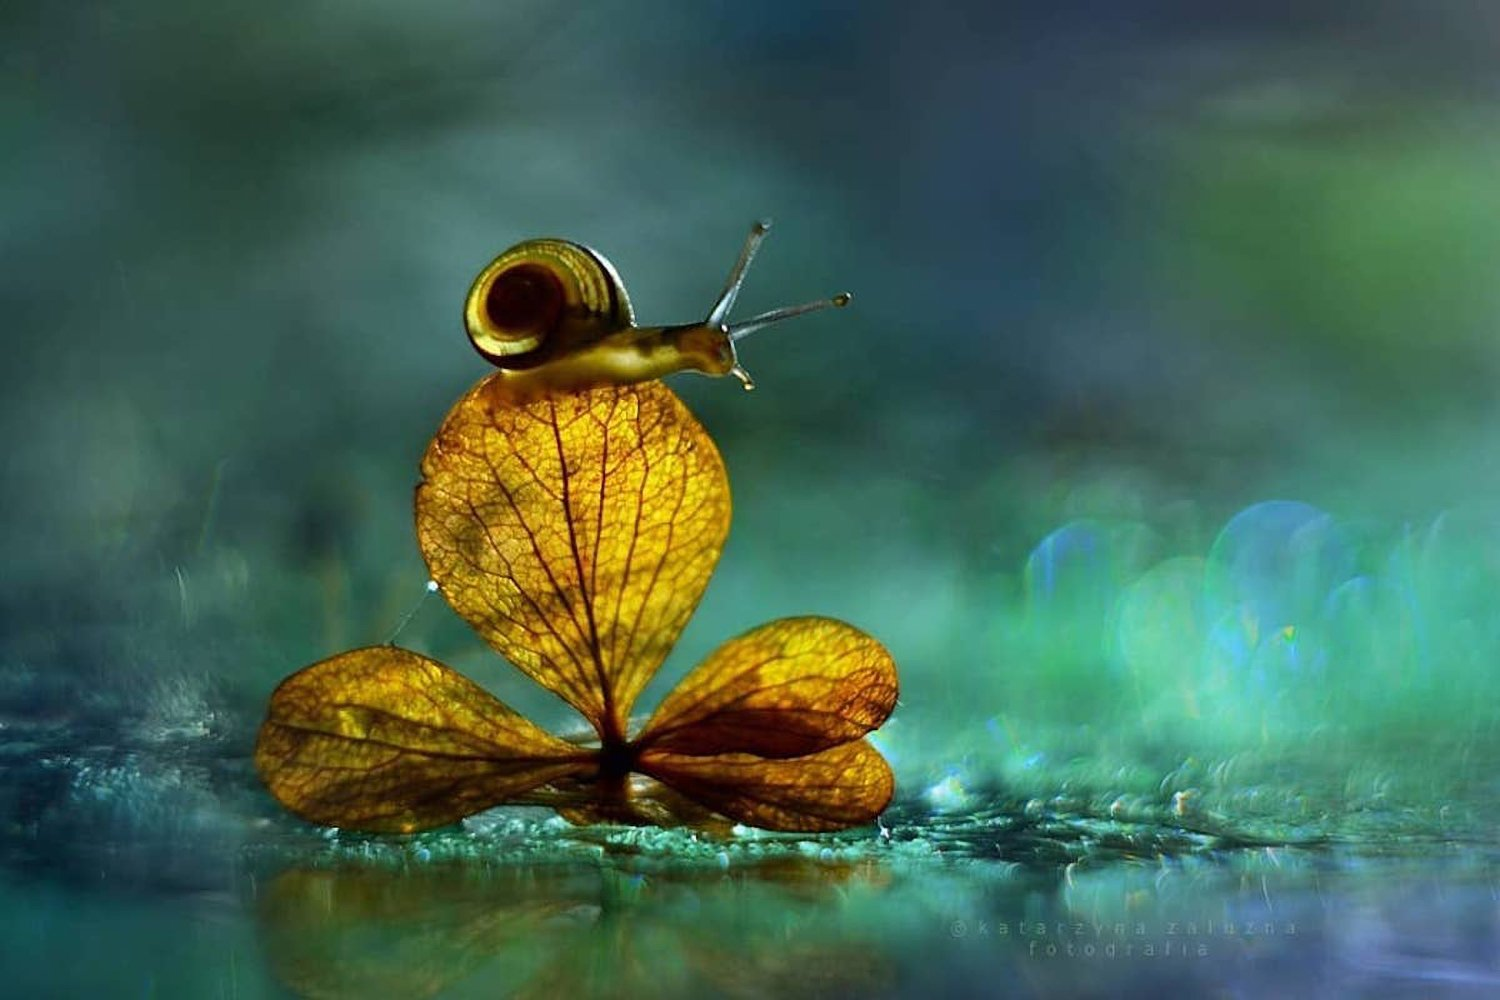 Incredible Macro Photos of Snails Reveal Tiny Worlds